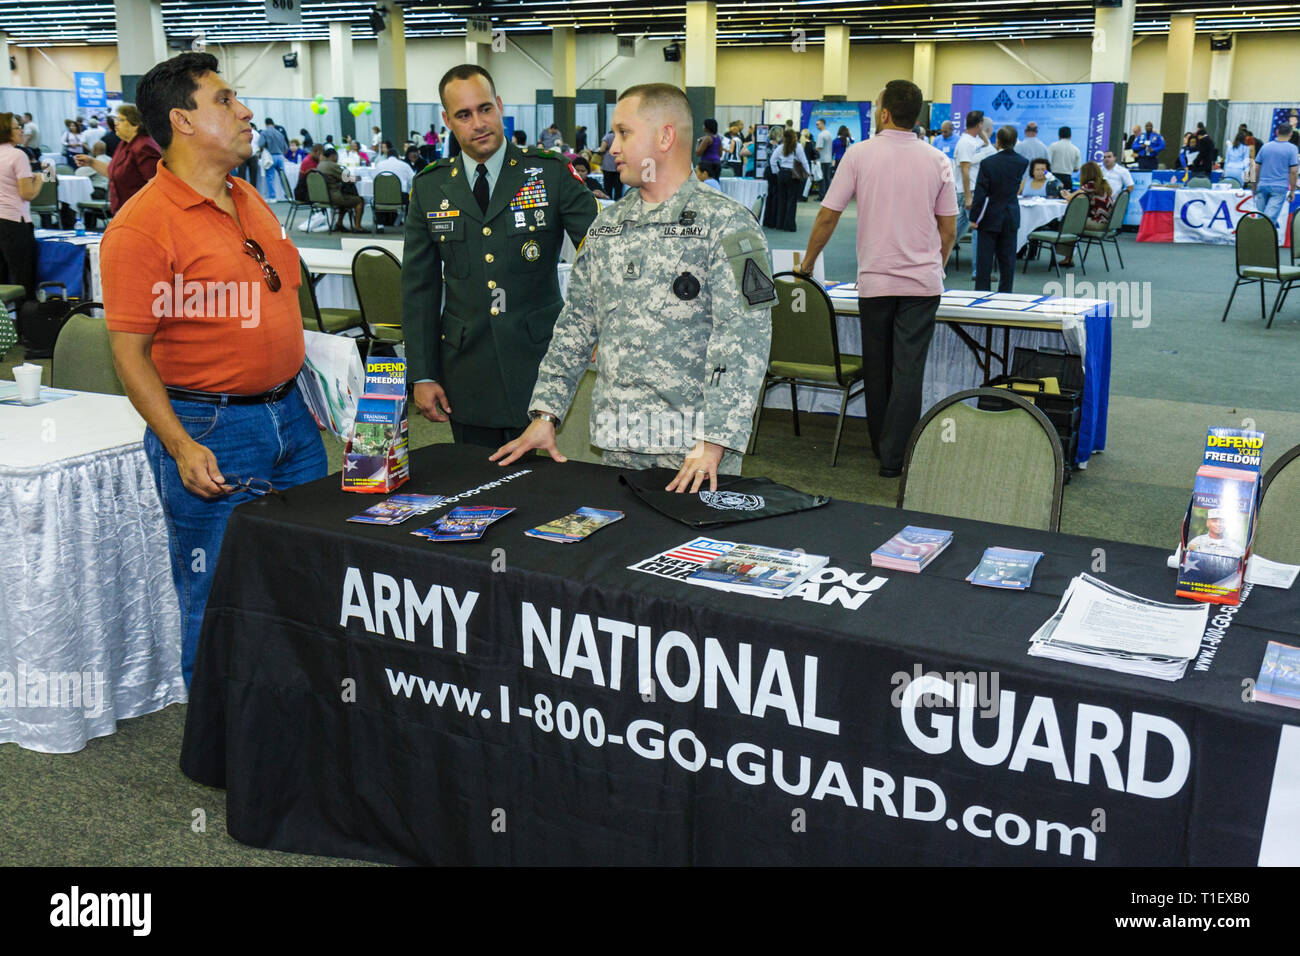 Miami Florida Job Fair career employment jobless labor job seeker employer recruiting economic crisis booth Army National Guard - Stock Image